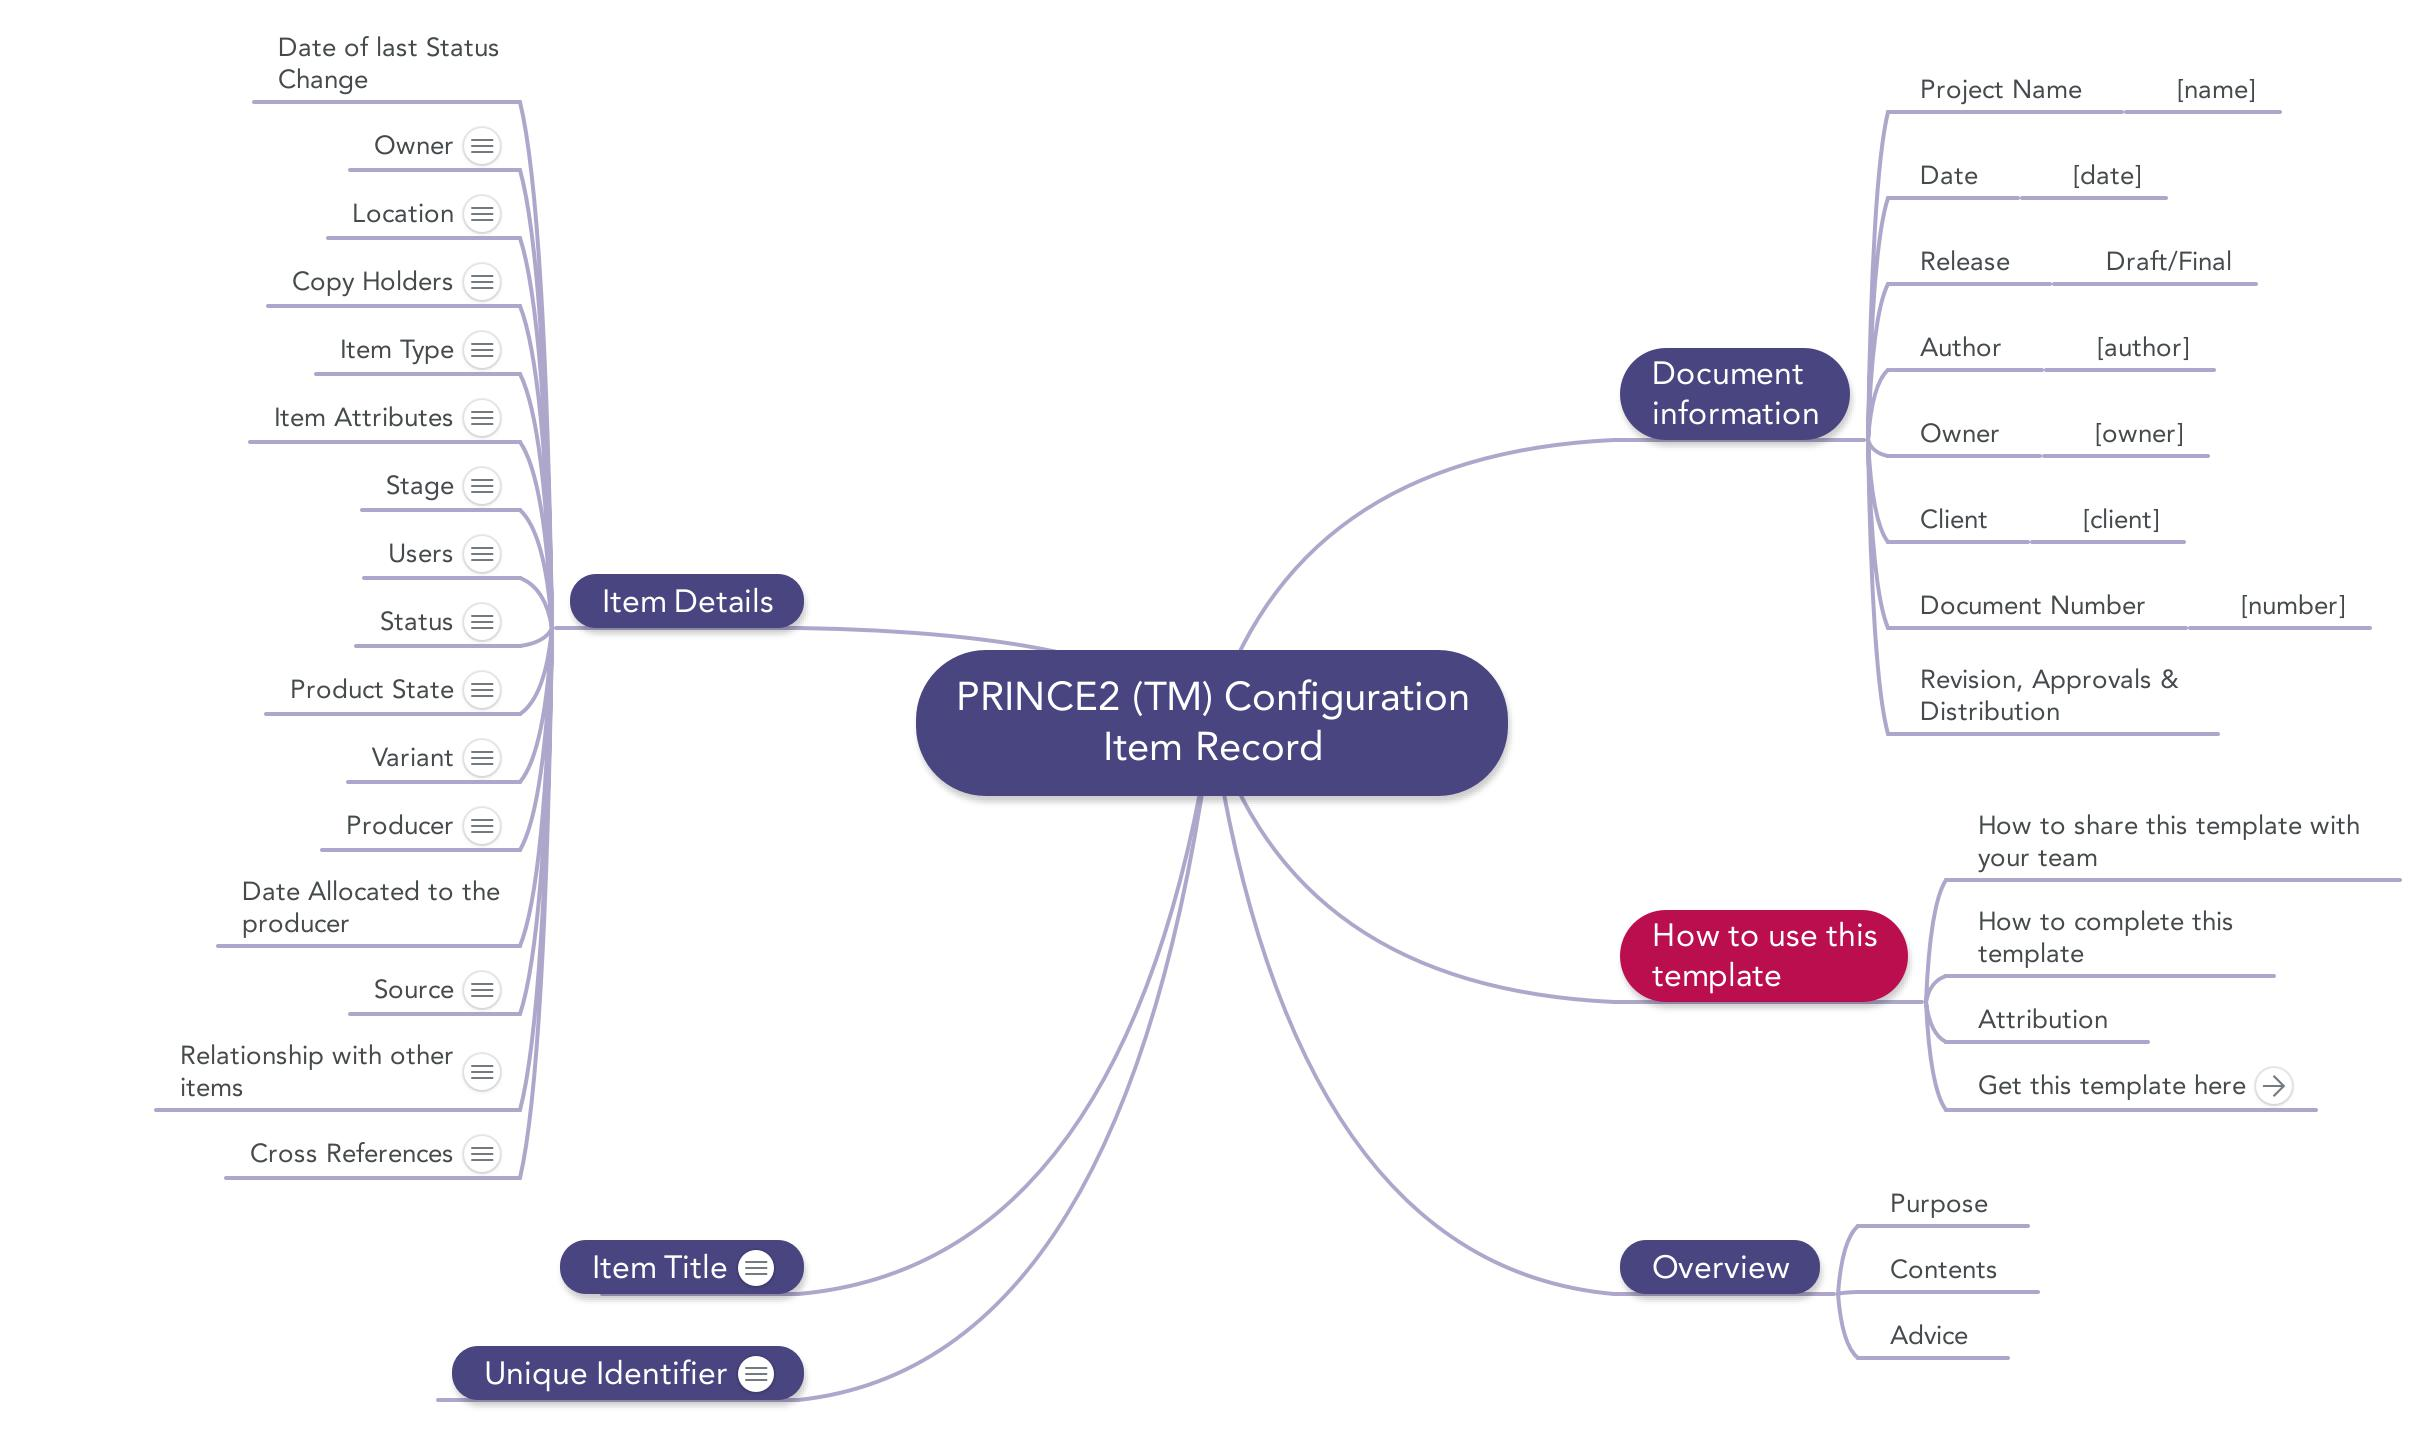 prince templates mind maps word excel and pdf the configuration item record in word pdf or mindmap format